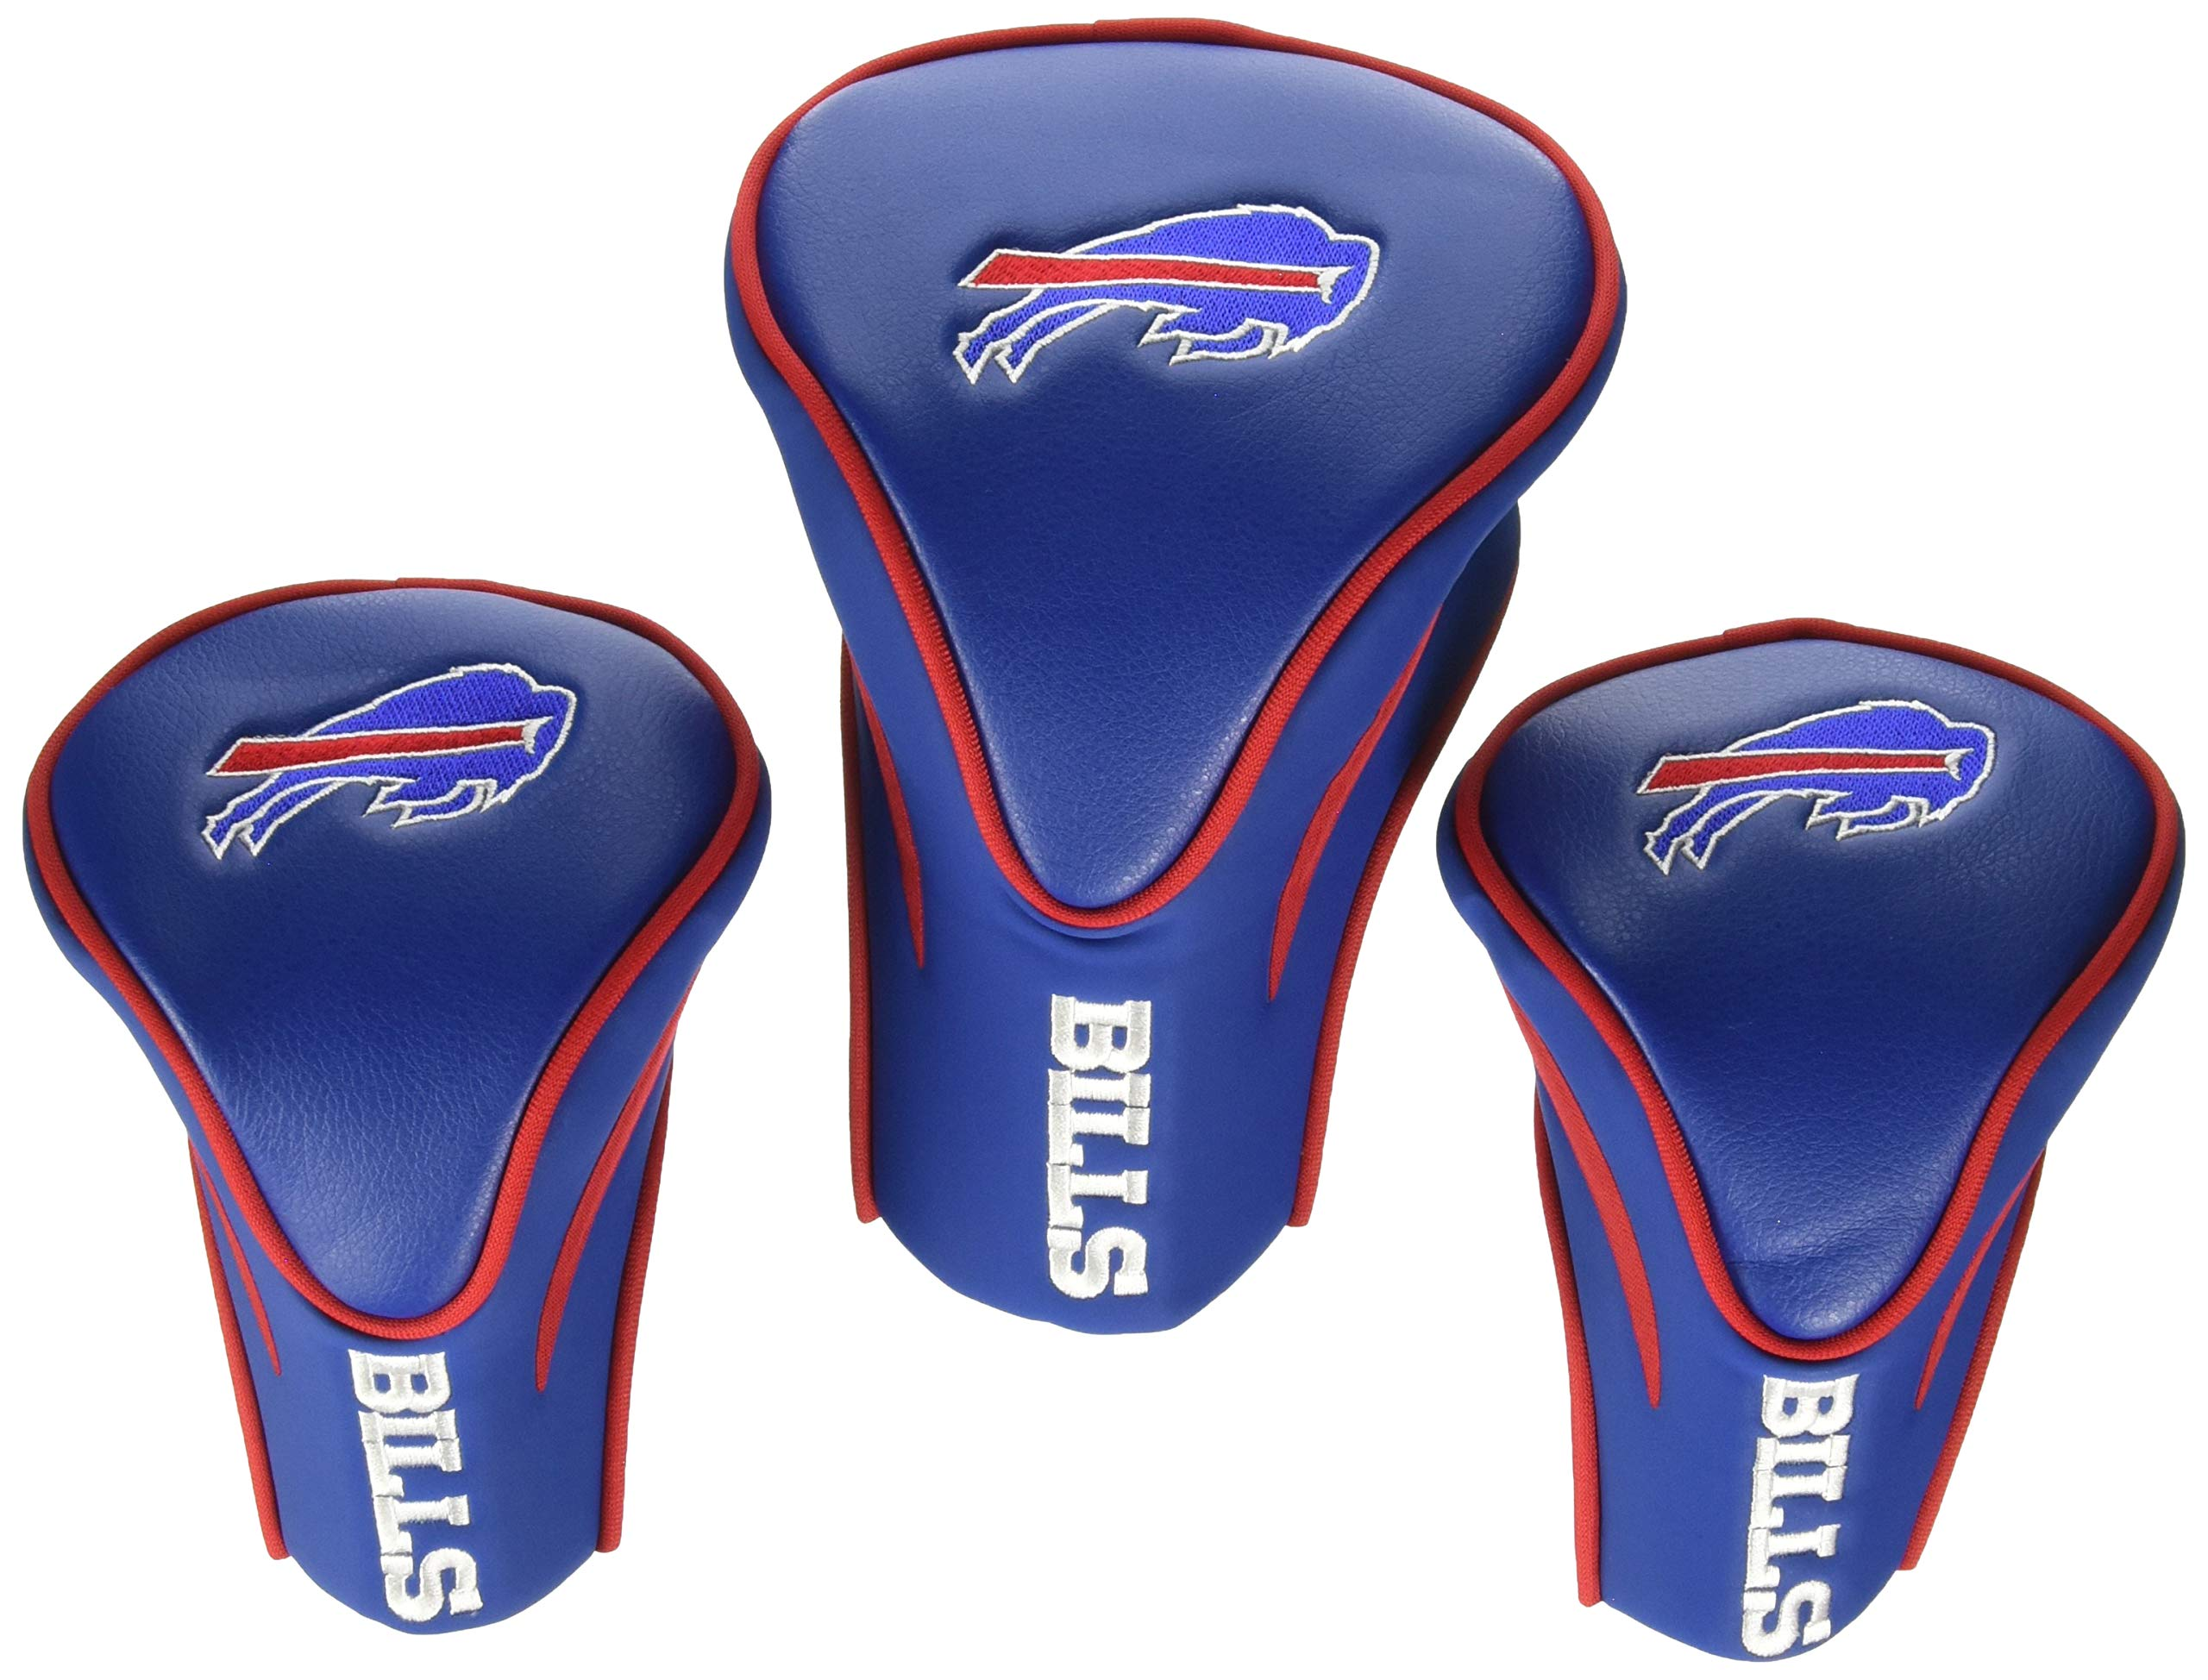 Team Golf NFL Buffalo Bills Contour Golf Club Headcovers (3 Count), Numbered 1, 3, & X, Fits Oversized Drivers, Utility, Rescue & Fairway Clubs, Velour lined for Extra Club Protection